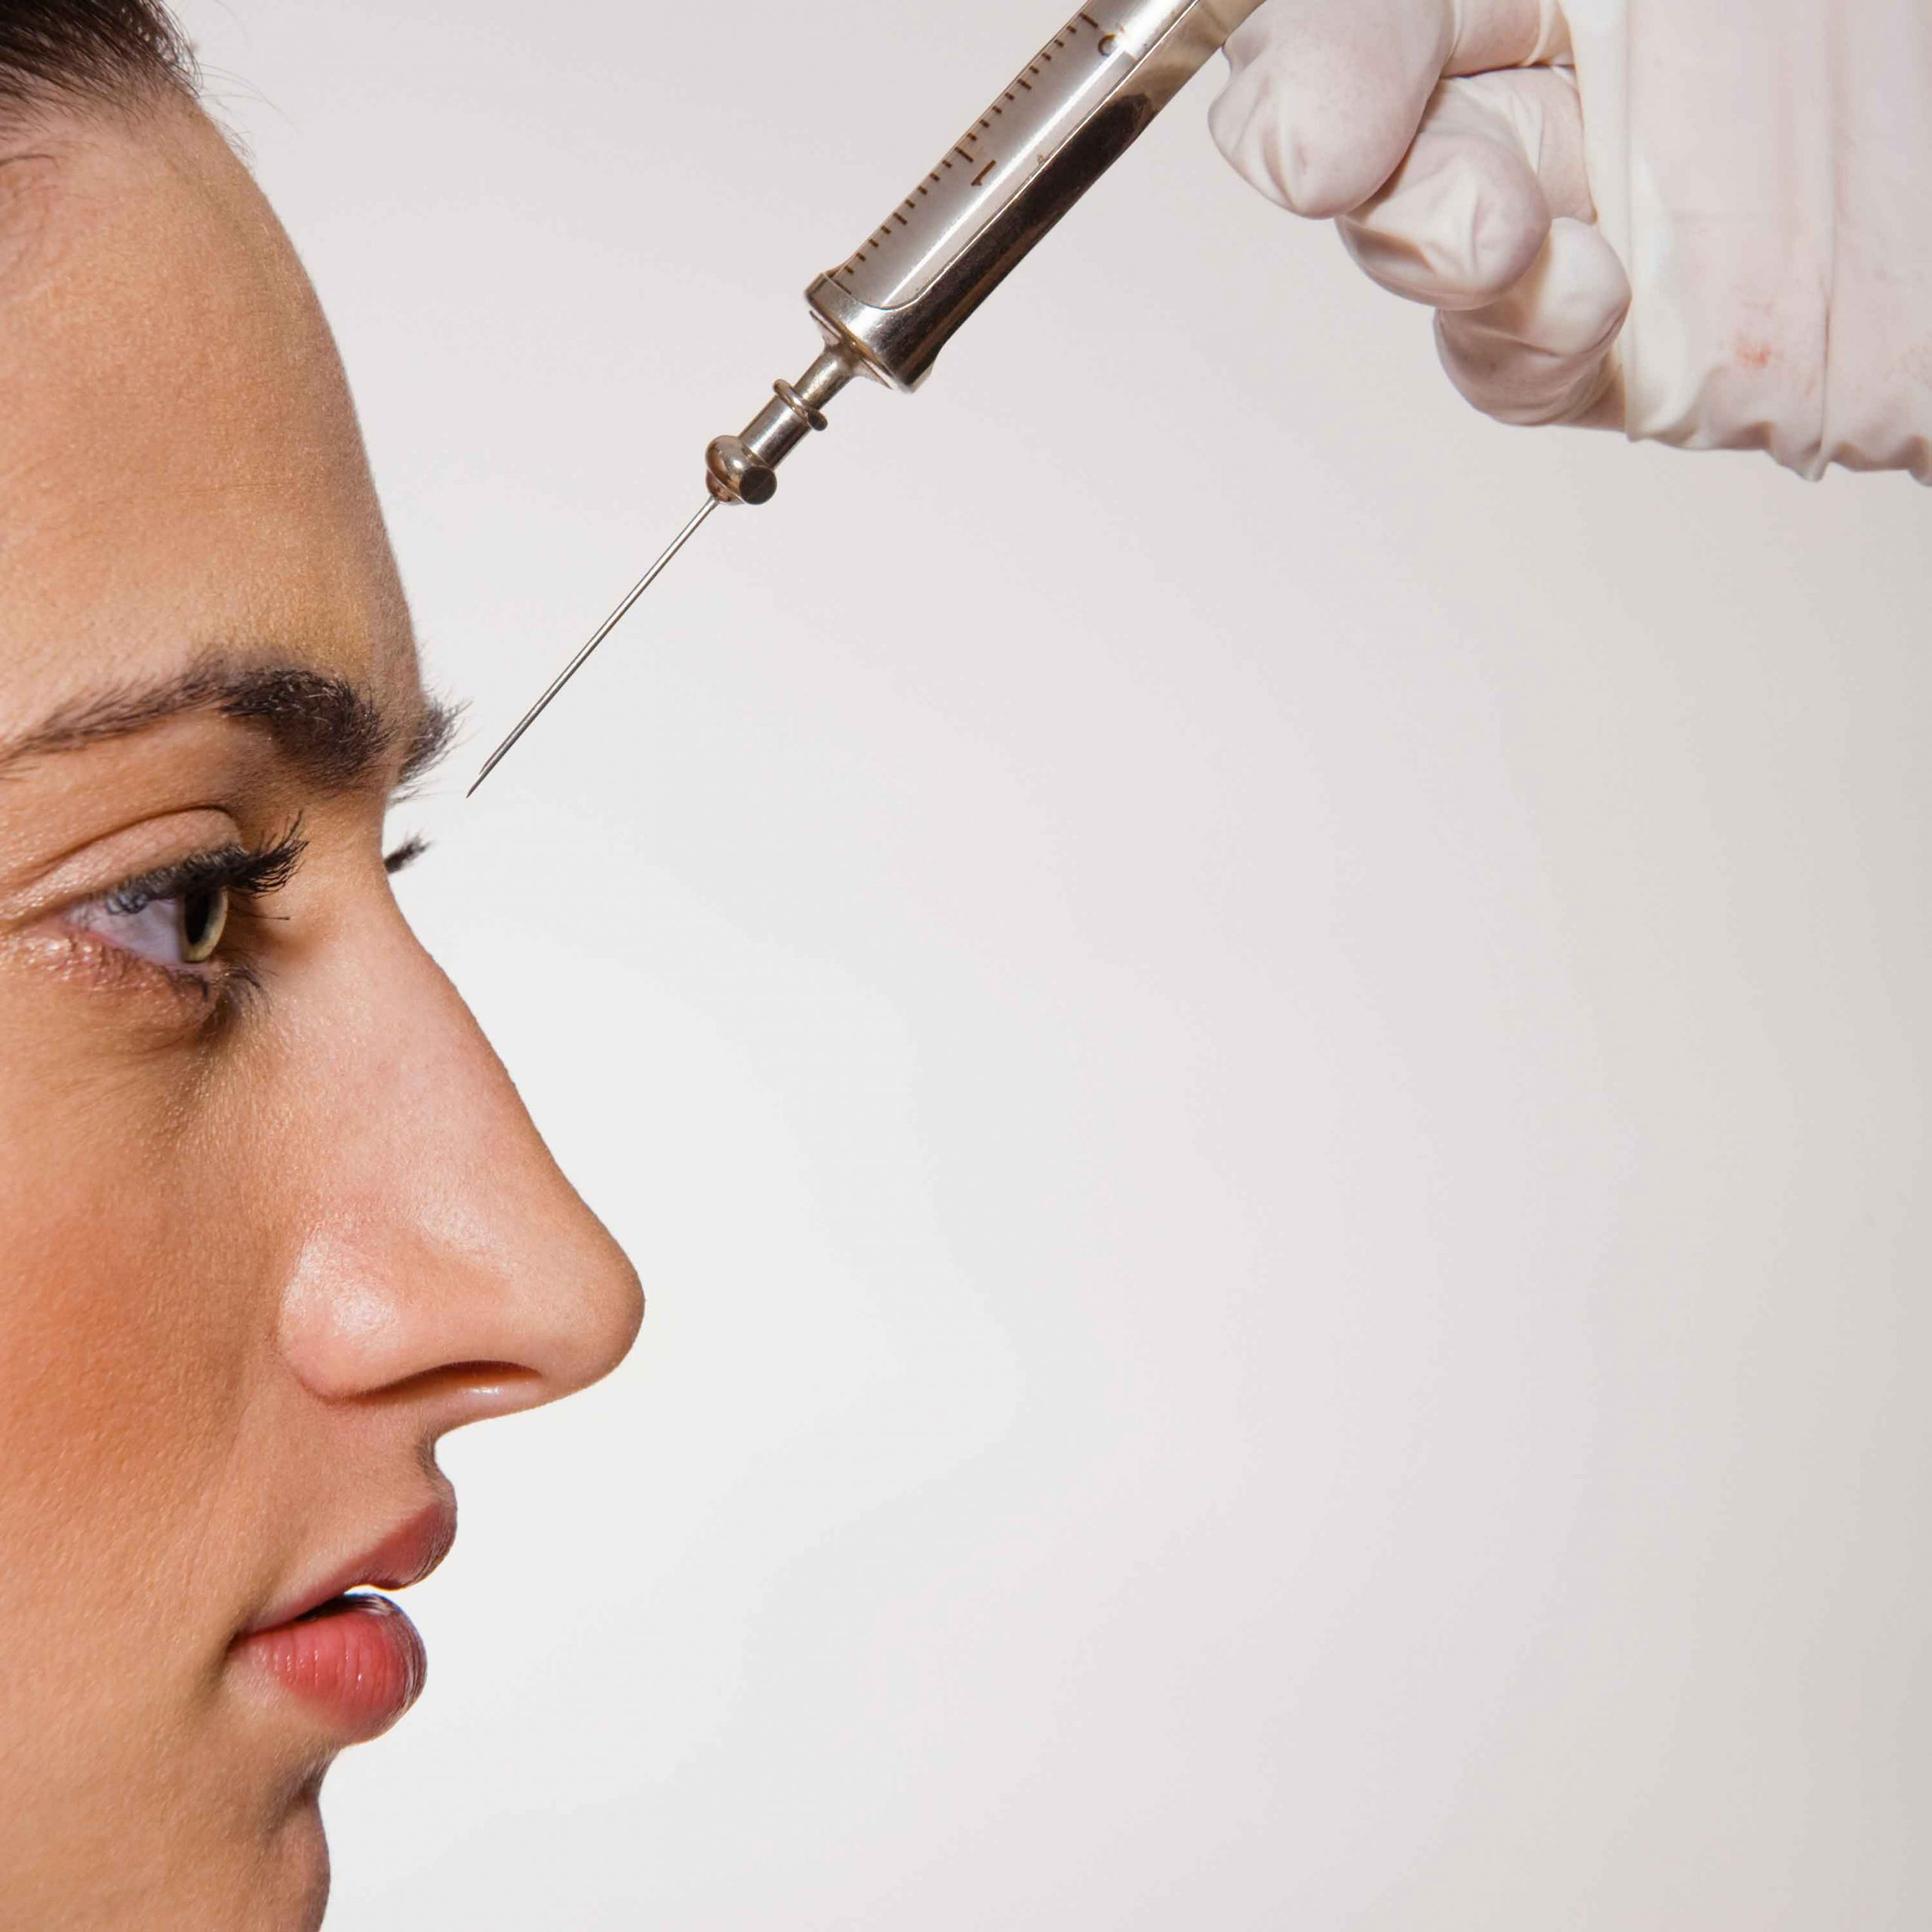 Nose surgery after fillers 5